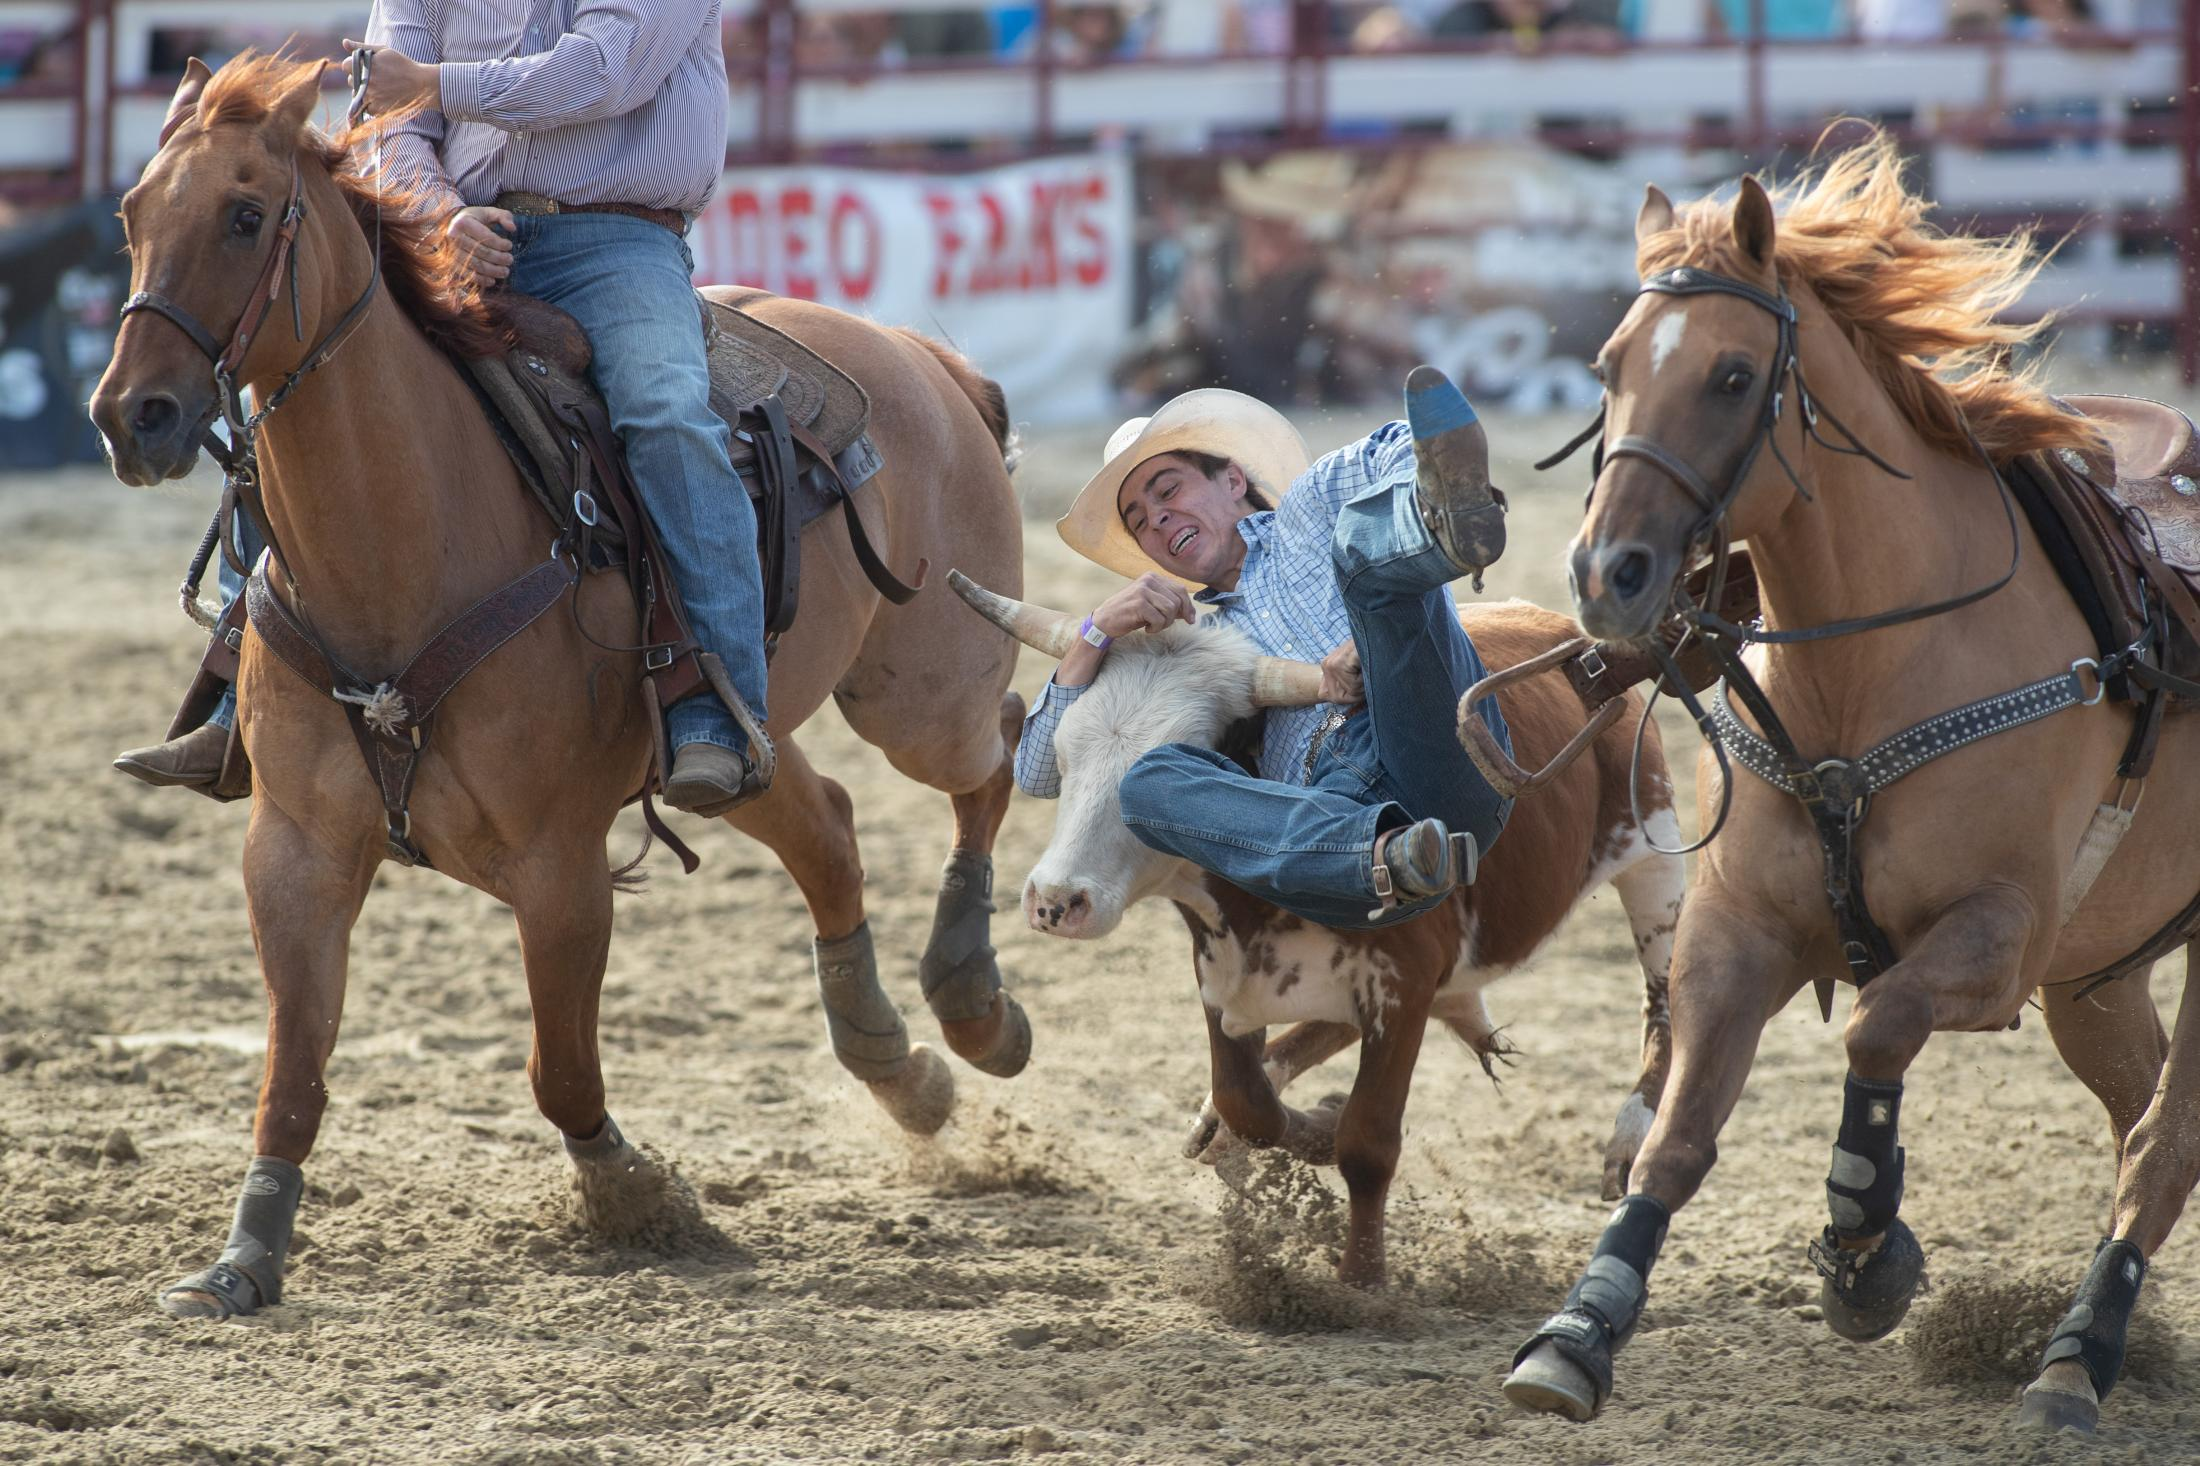 Colton Swearingen from Pifford, New York jumps off of his house to take down a steer during the steer wrestling competition as part of the PRCA rodeo at the Goshen Stampede in Goshen, CT on June 15, 2019.